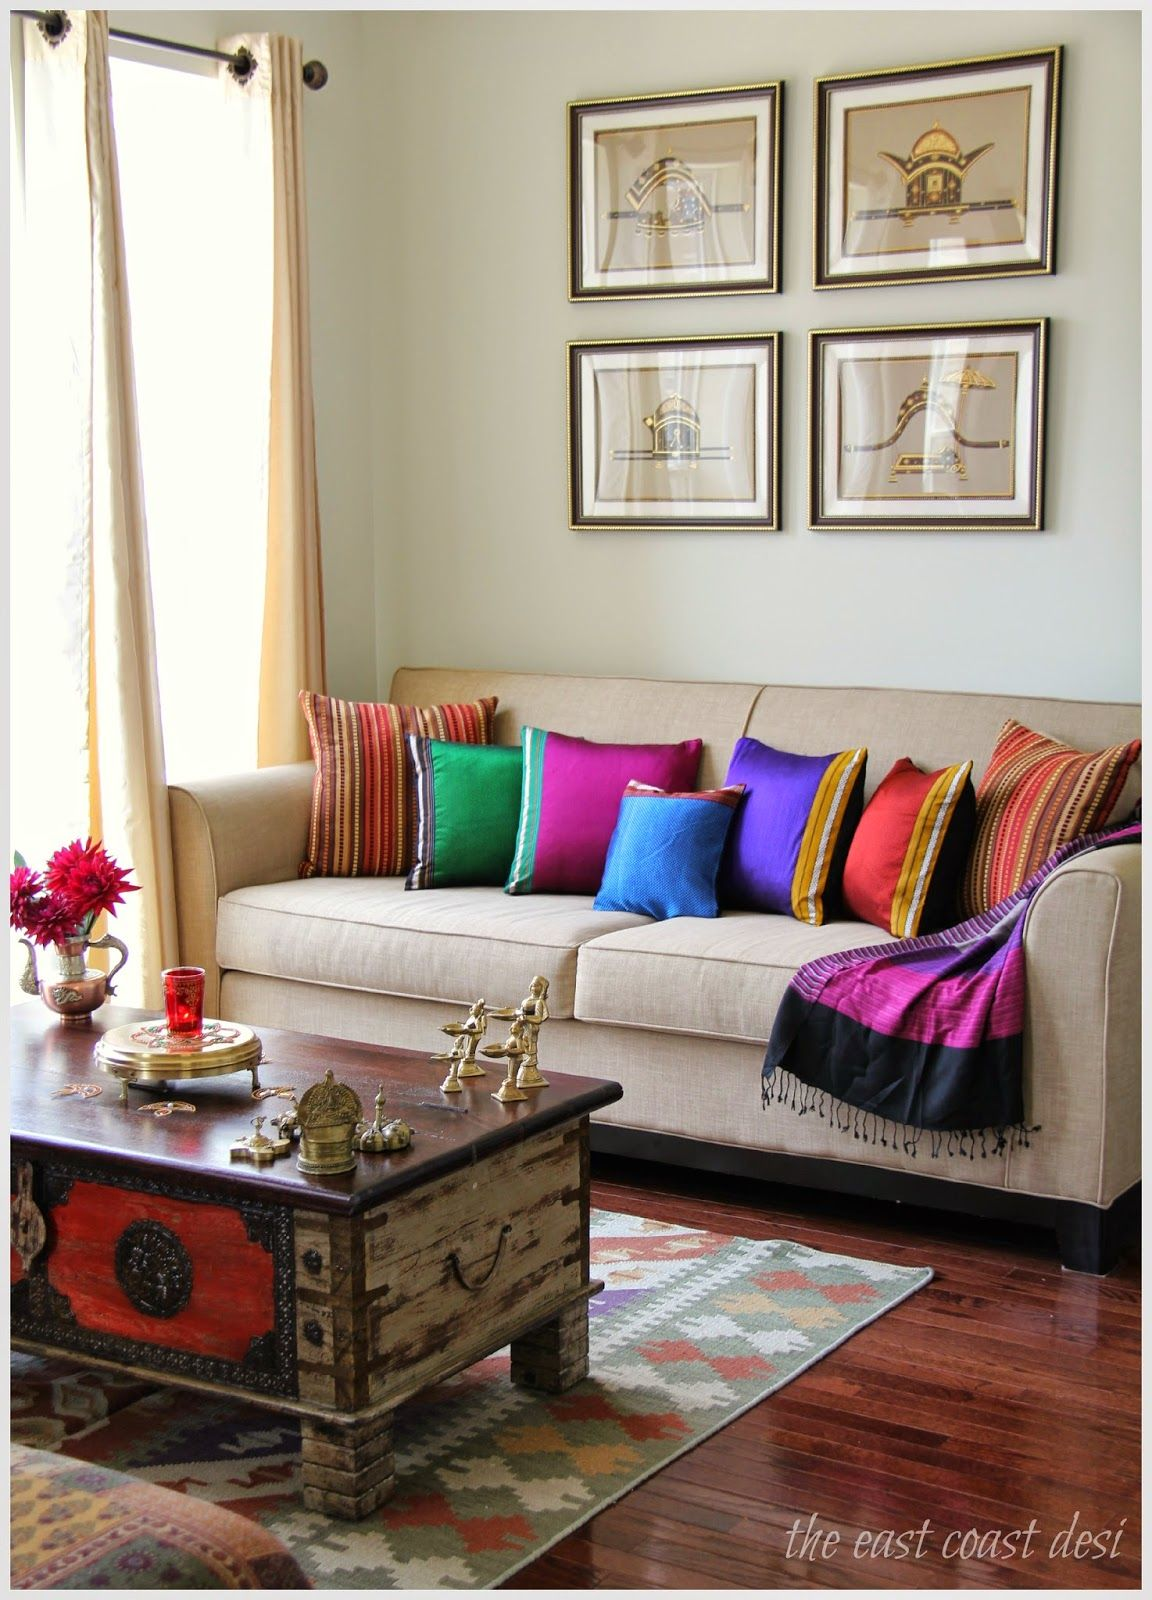 Interior Design Decorating Ideas: Revival Of A Fading Handloom Tradition - The KHUN